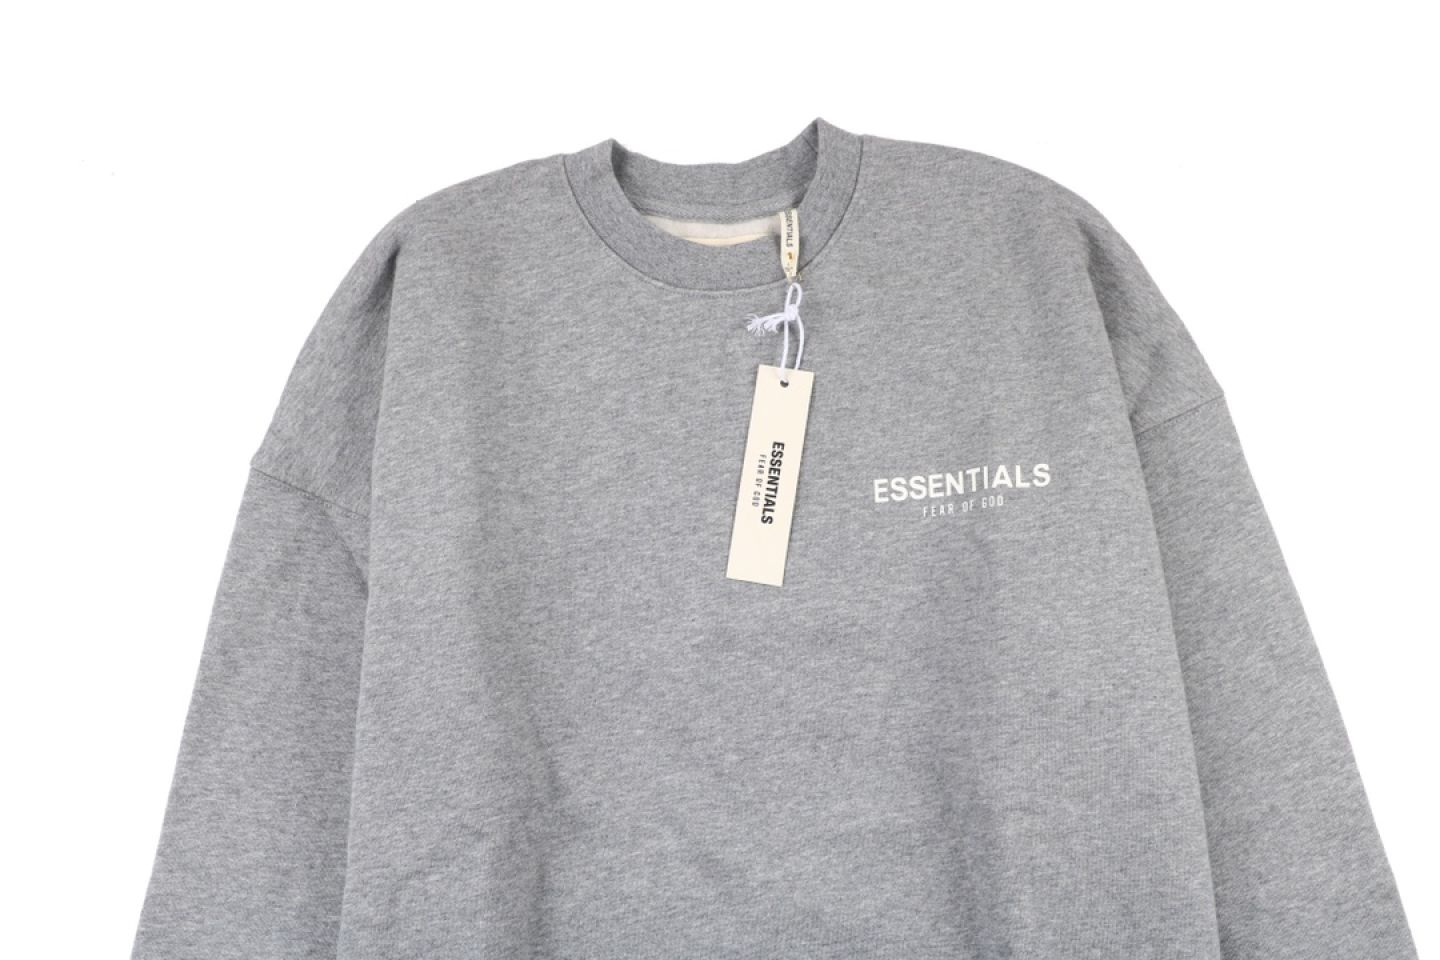 "Shirt Fear Of God Essential double line crew neck sweater ""Grey"" 2 fear_of_god_essential_double_line_crew_neck_sweater_grey_2"